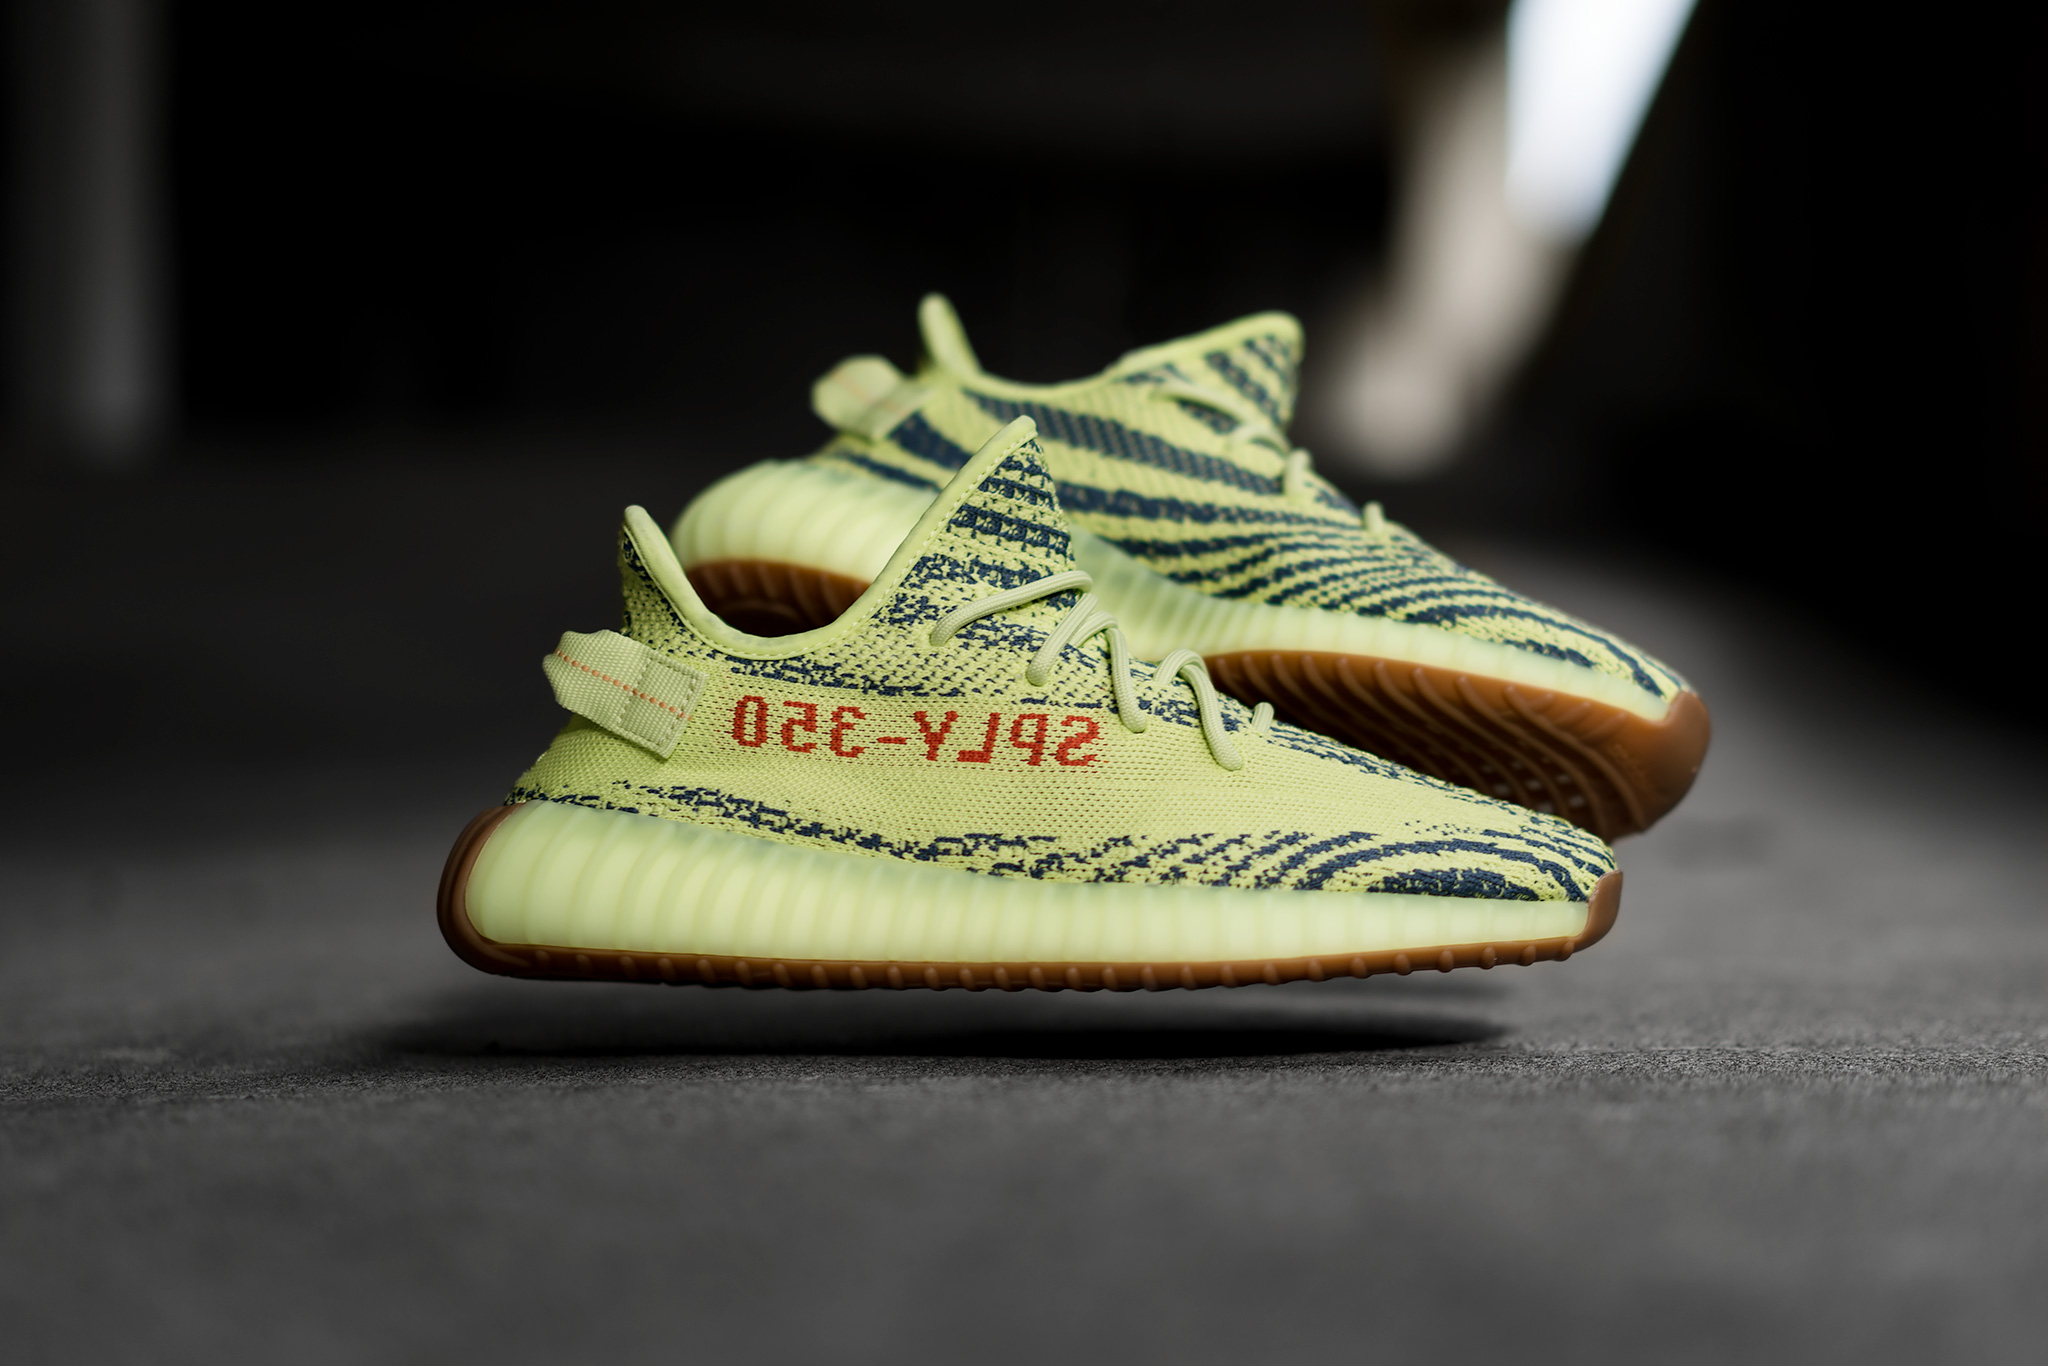 319f1fc55b83 ... Kanye West s partnership with adidas is set to release at HAVEN on  November 18th. Featuring the 3 stripes proprietary PrimeKnit construction